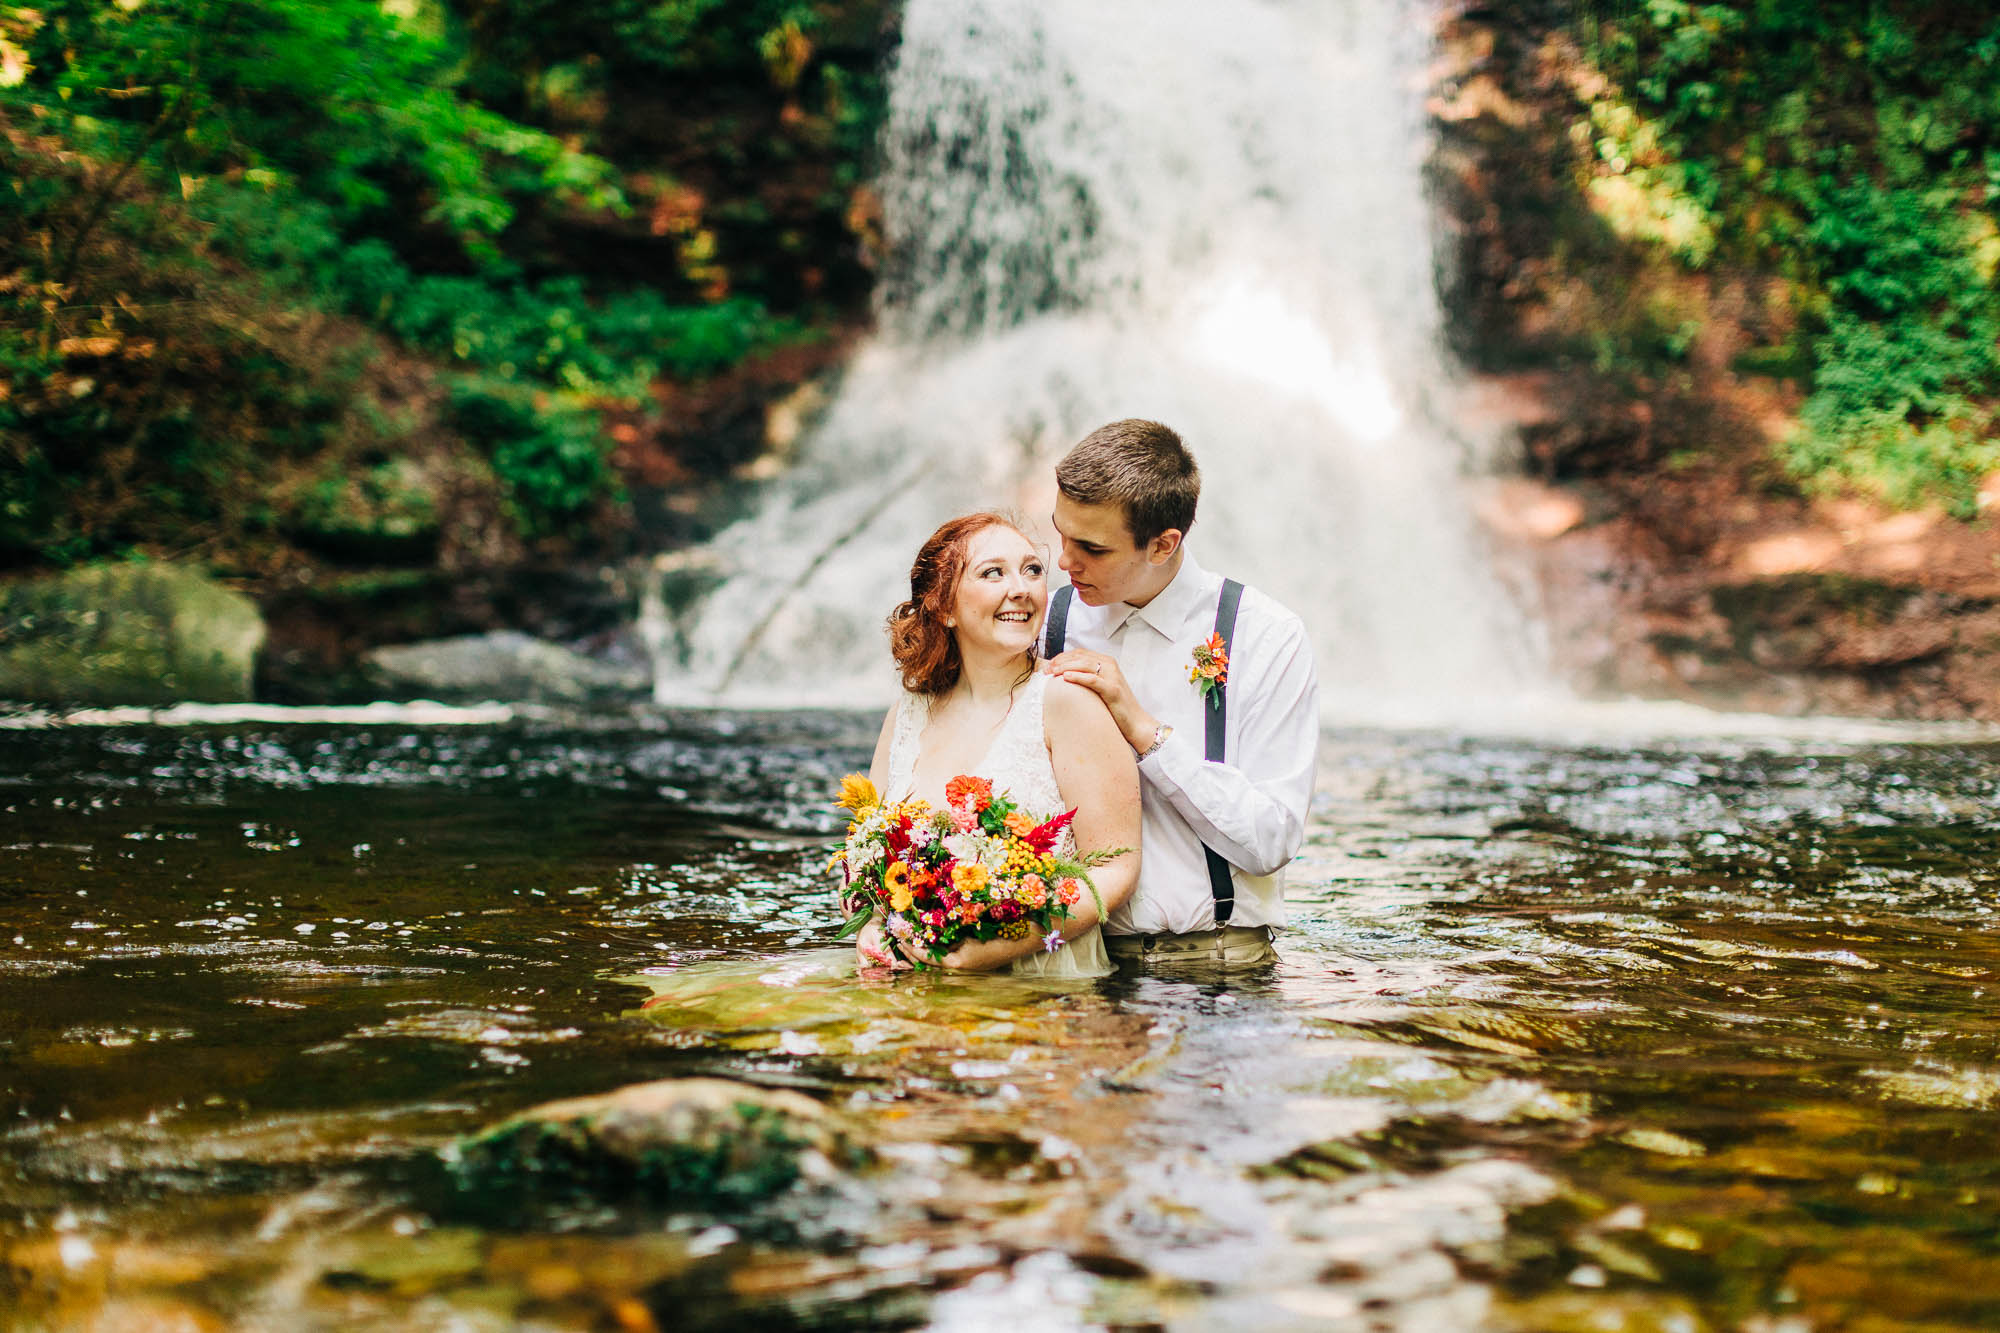 ricketts-glen-waterfall-pennsylvania-sullivan-falls-elopement-8863.jpg